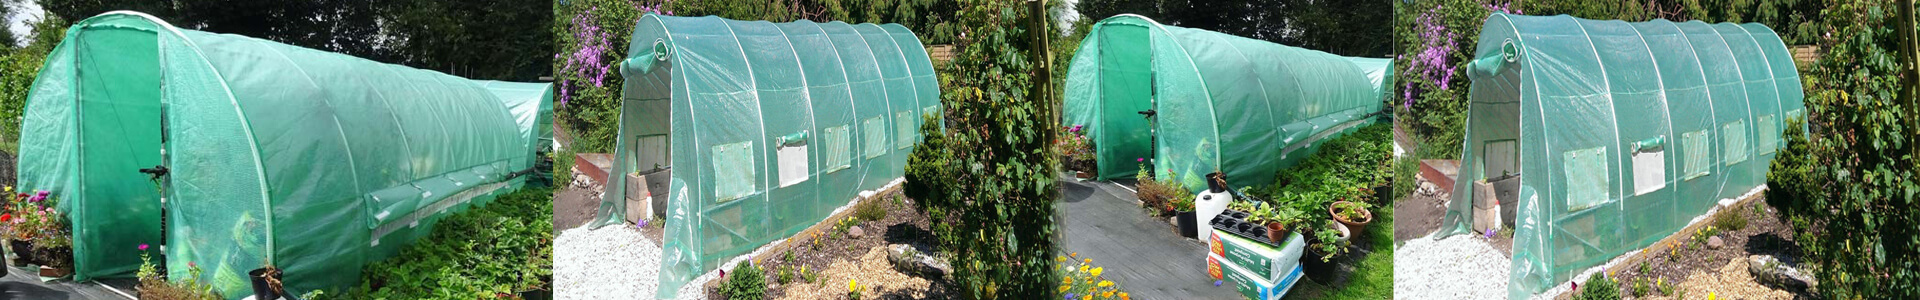 Cover Polytunnel 10FT x 7FT Zip Or Metal Door